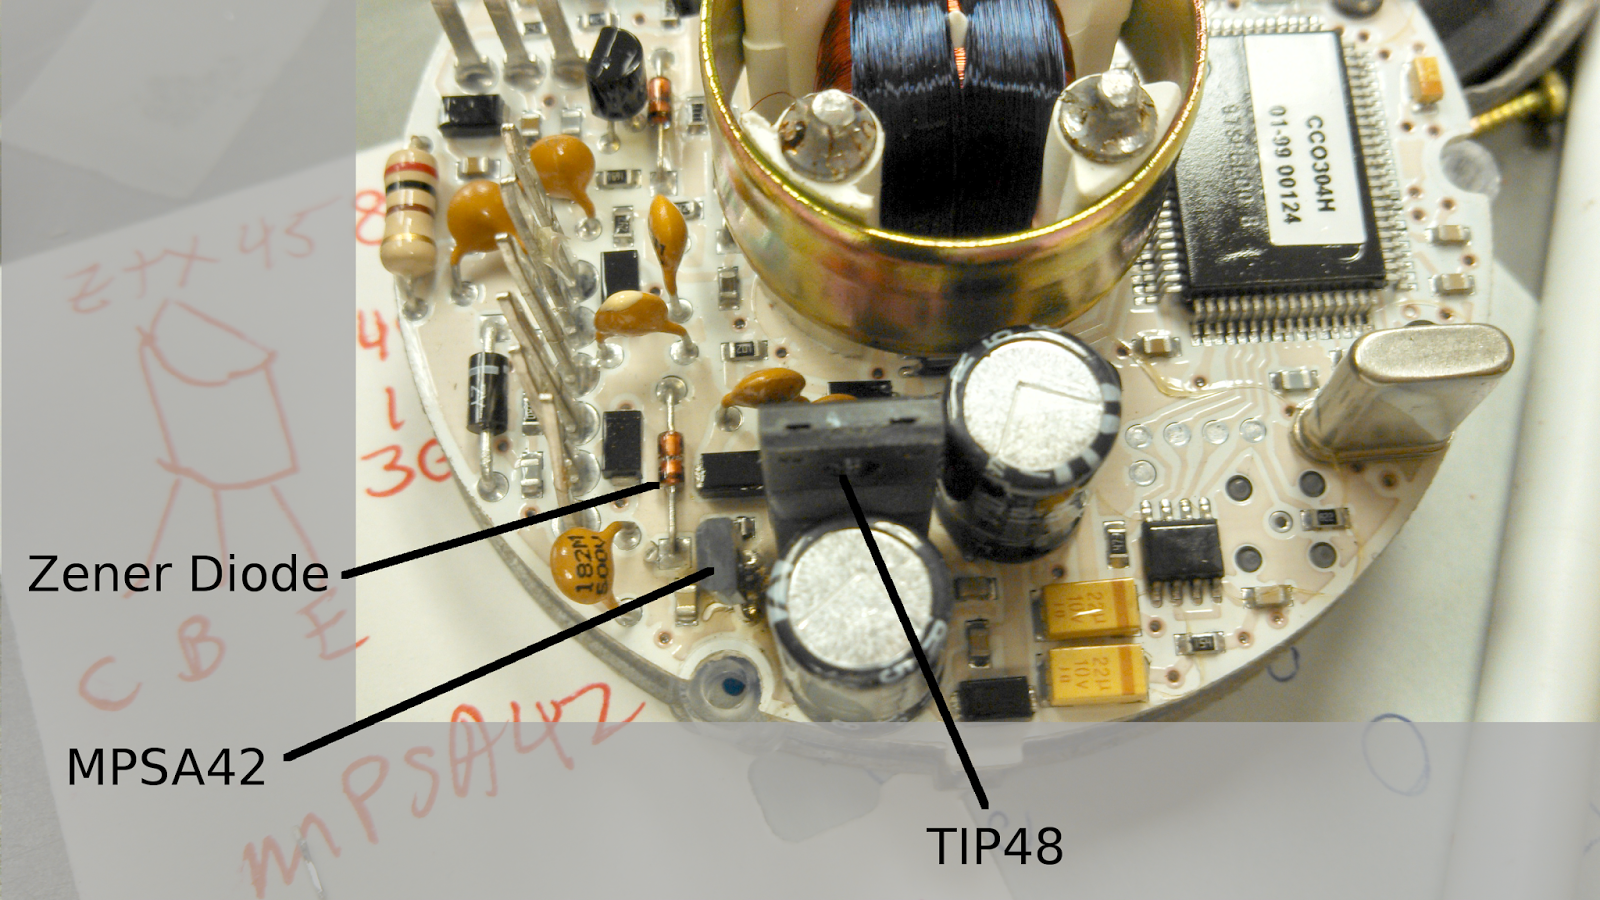 hight resolution of figure 4 location of the likely bad part s when i took this picture i had already replaced the tip48 and the mpsa42 but not the zener diode